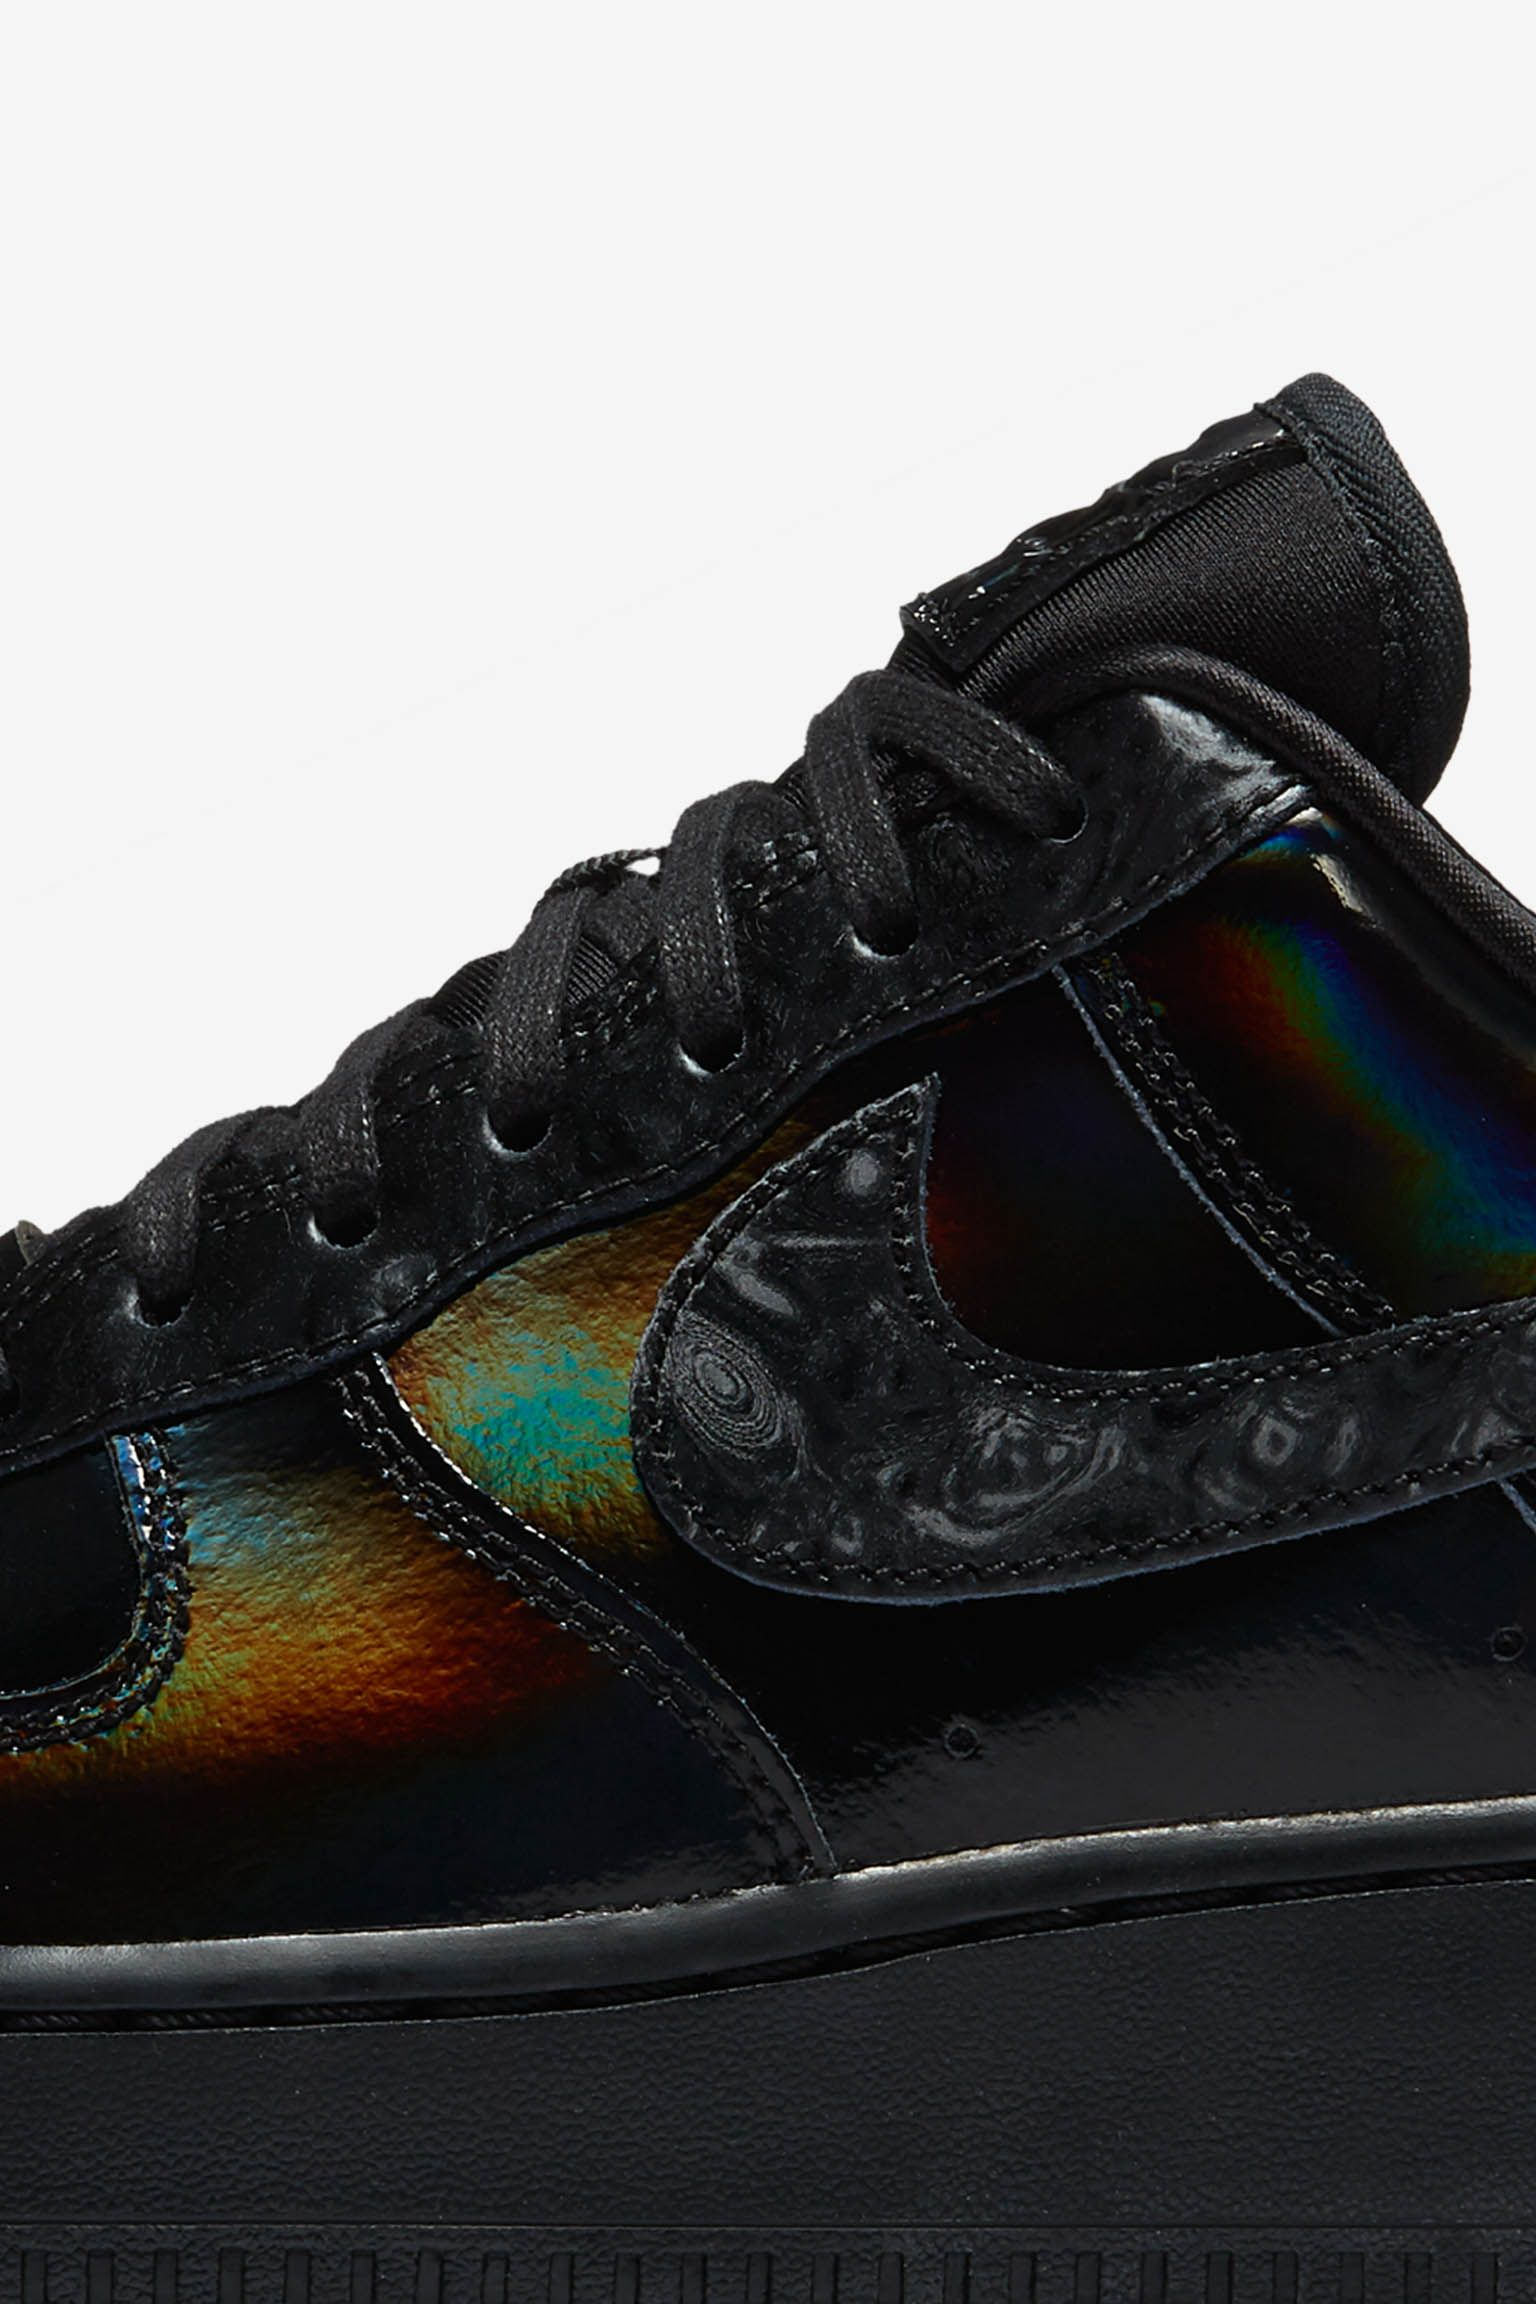 Nike Women's Air Force 1 Low 'Black & Summit White' Release Date